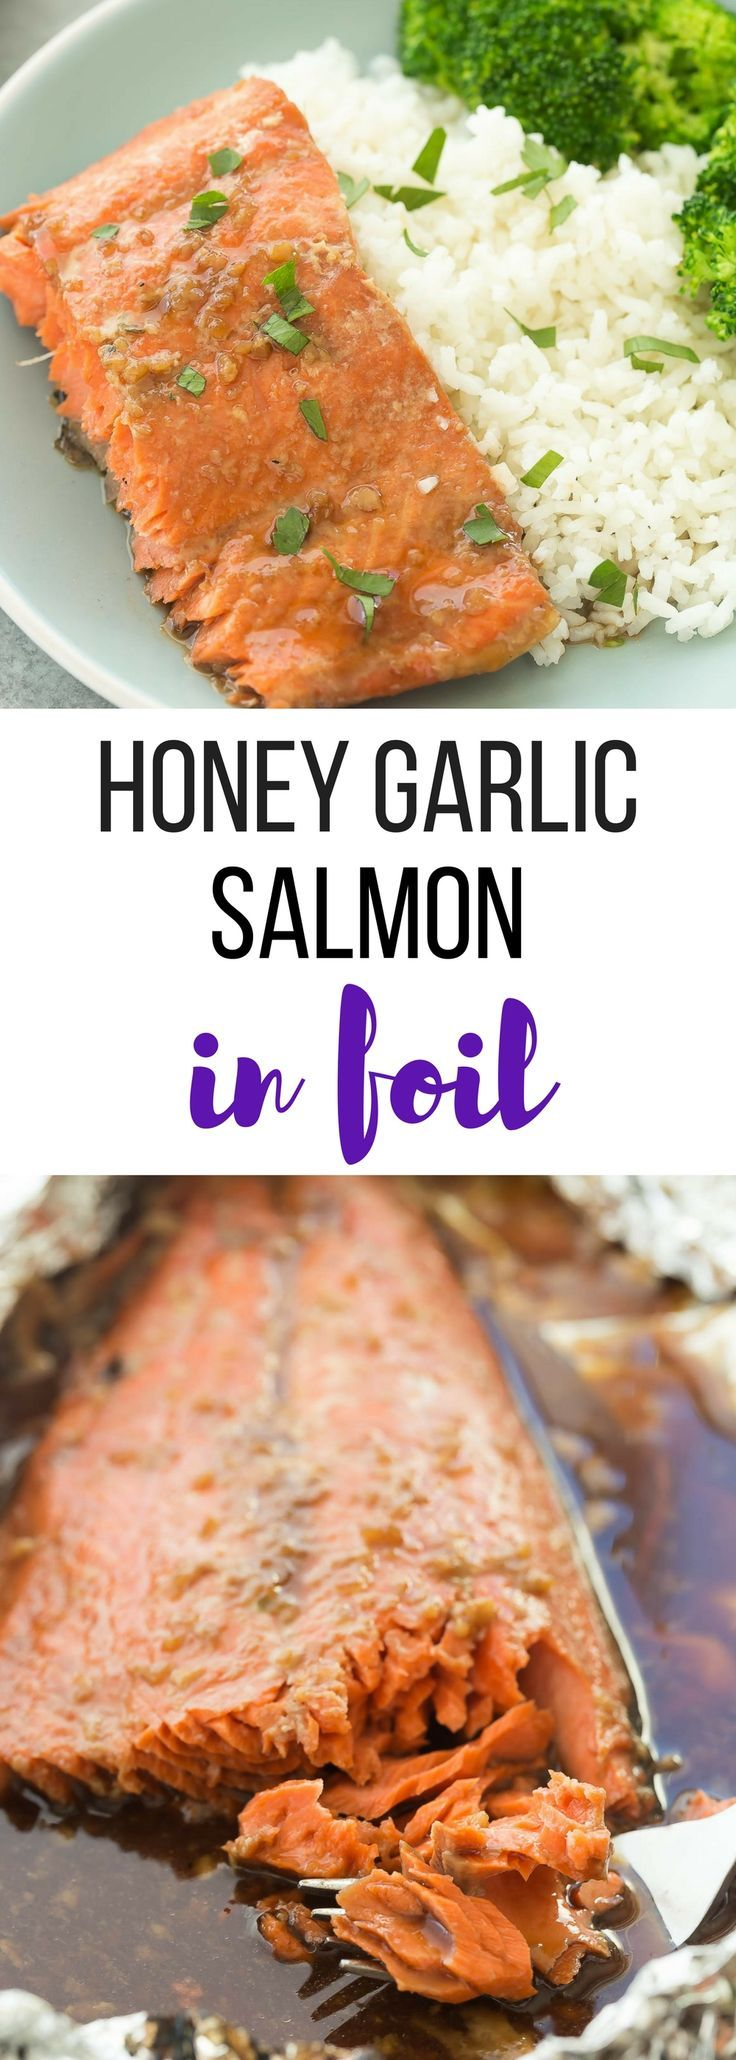 This Honey Garlic Salmon in Foil can be made in the oven or on the grill -- with just 5 ingredients and no dirty pans! It has a made from scratch honey garlic sauce that's also great on chicken, pork or beef. Includes how to recipe video.   seafood   fish   healthy   low calorie   diet